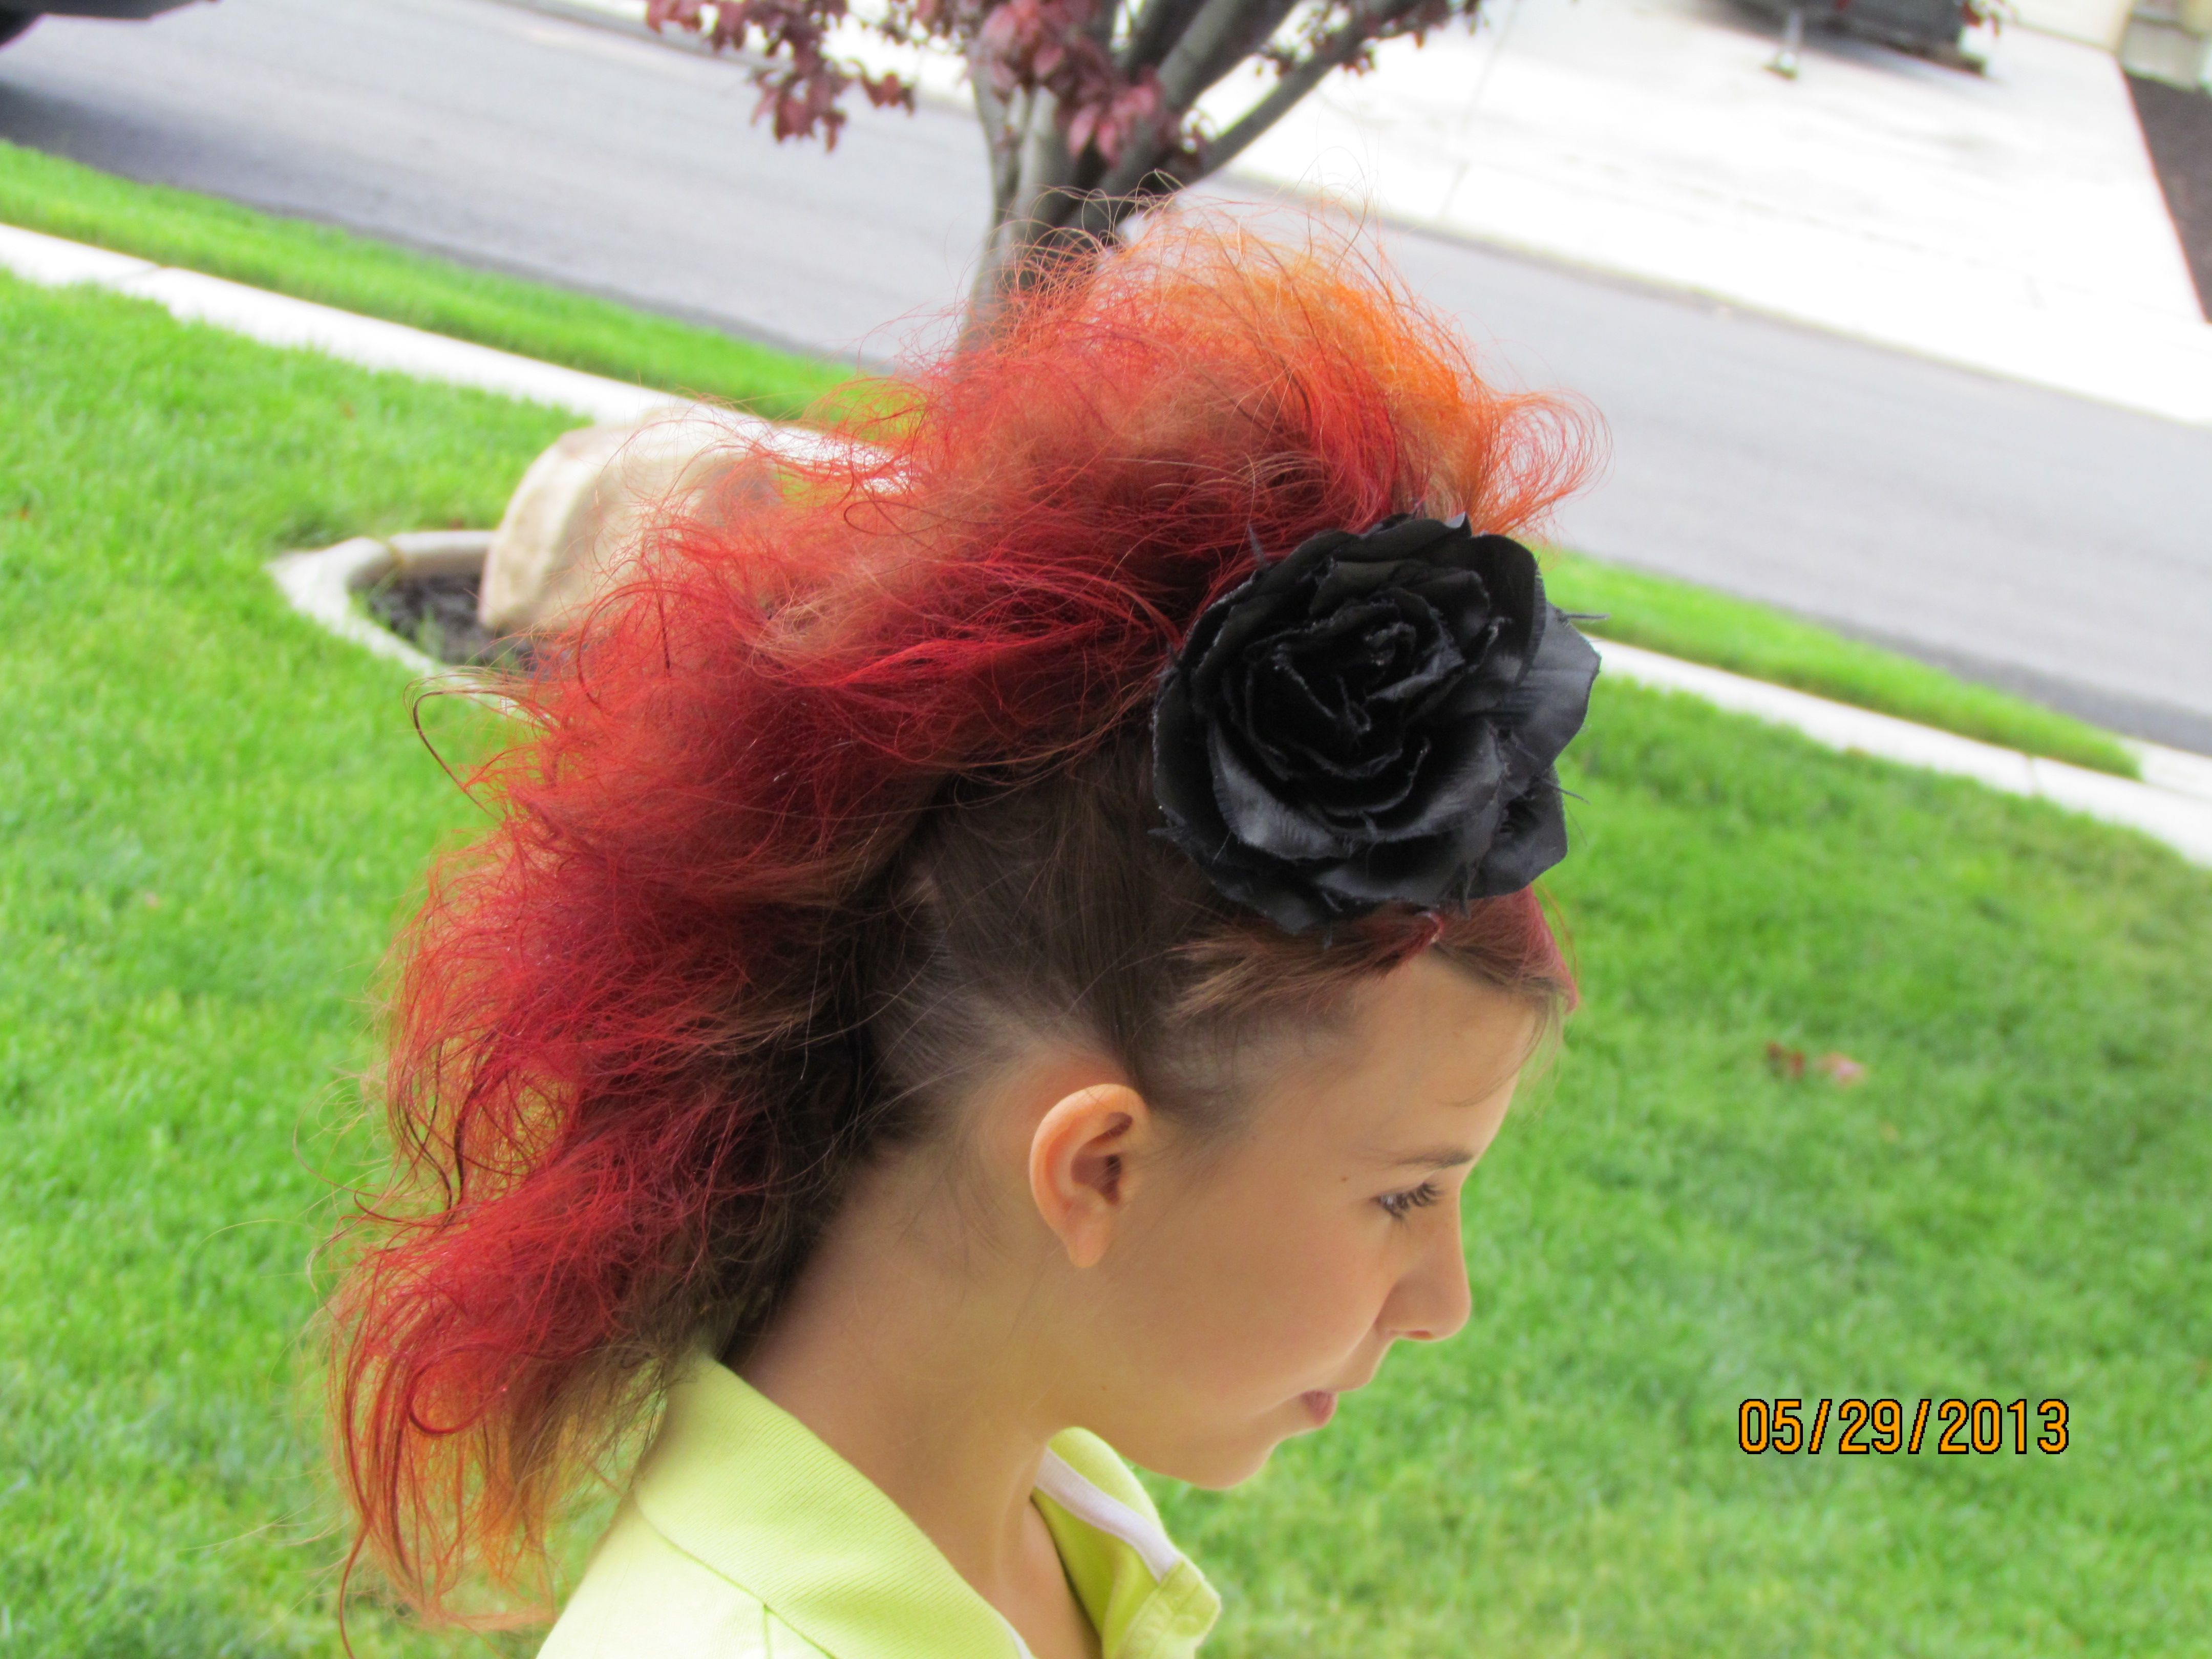 Sydneyus mohawk for crazy hair day acro pinterest hair